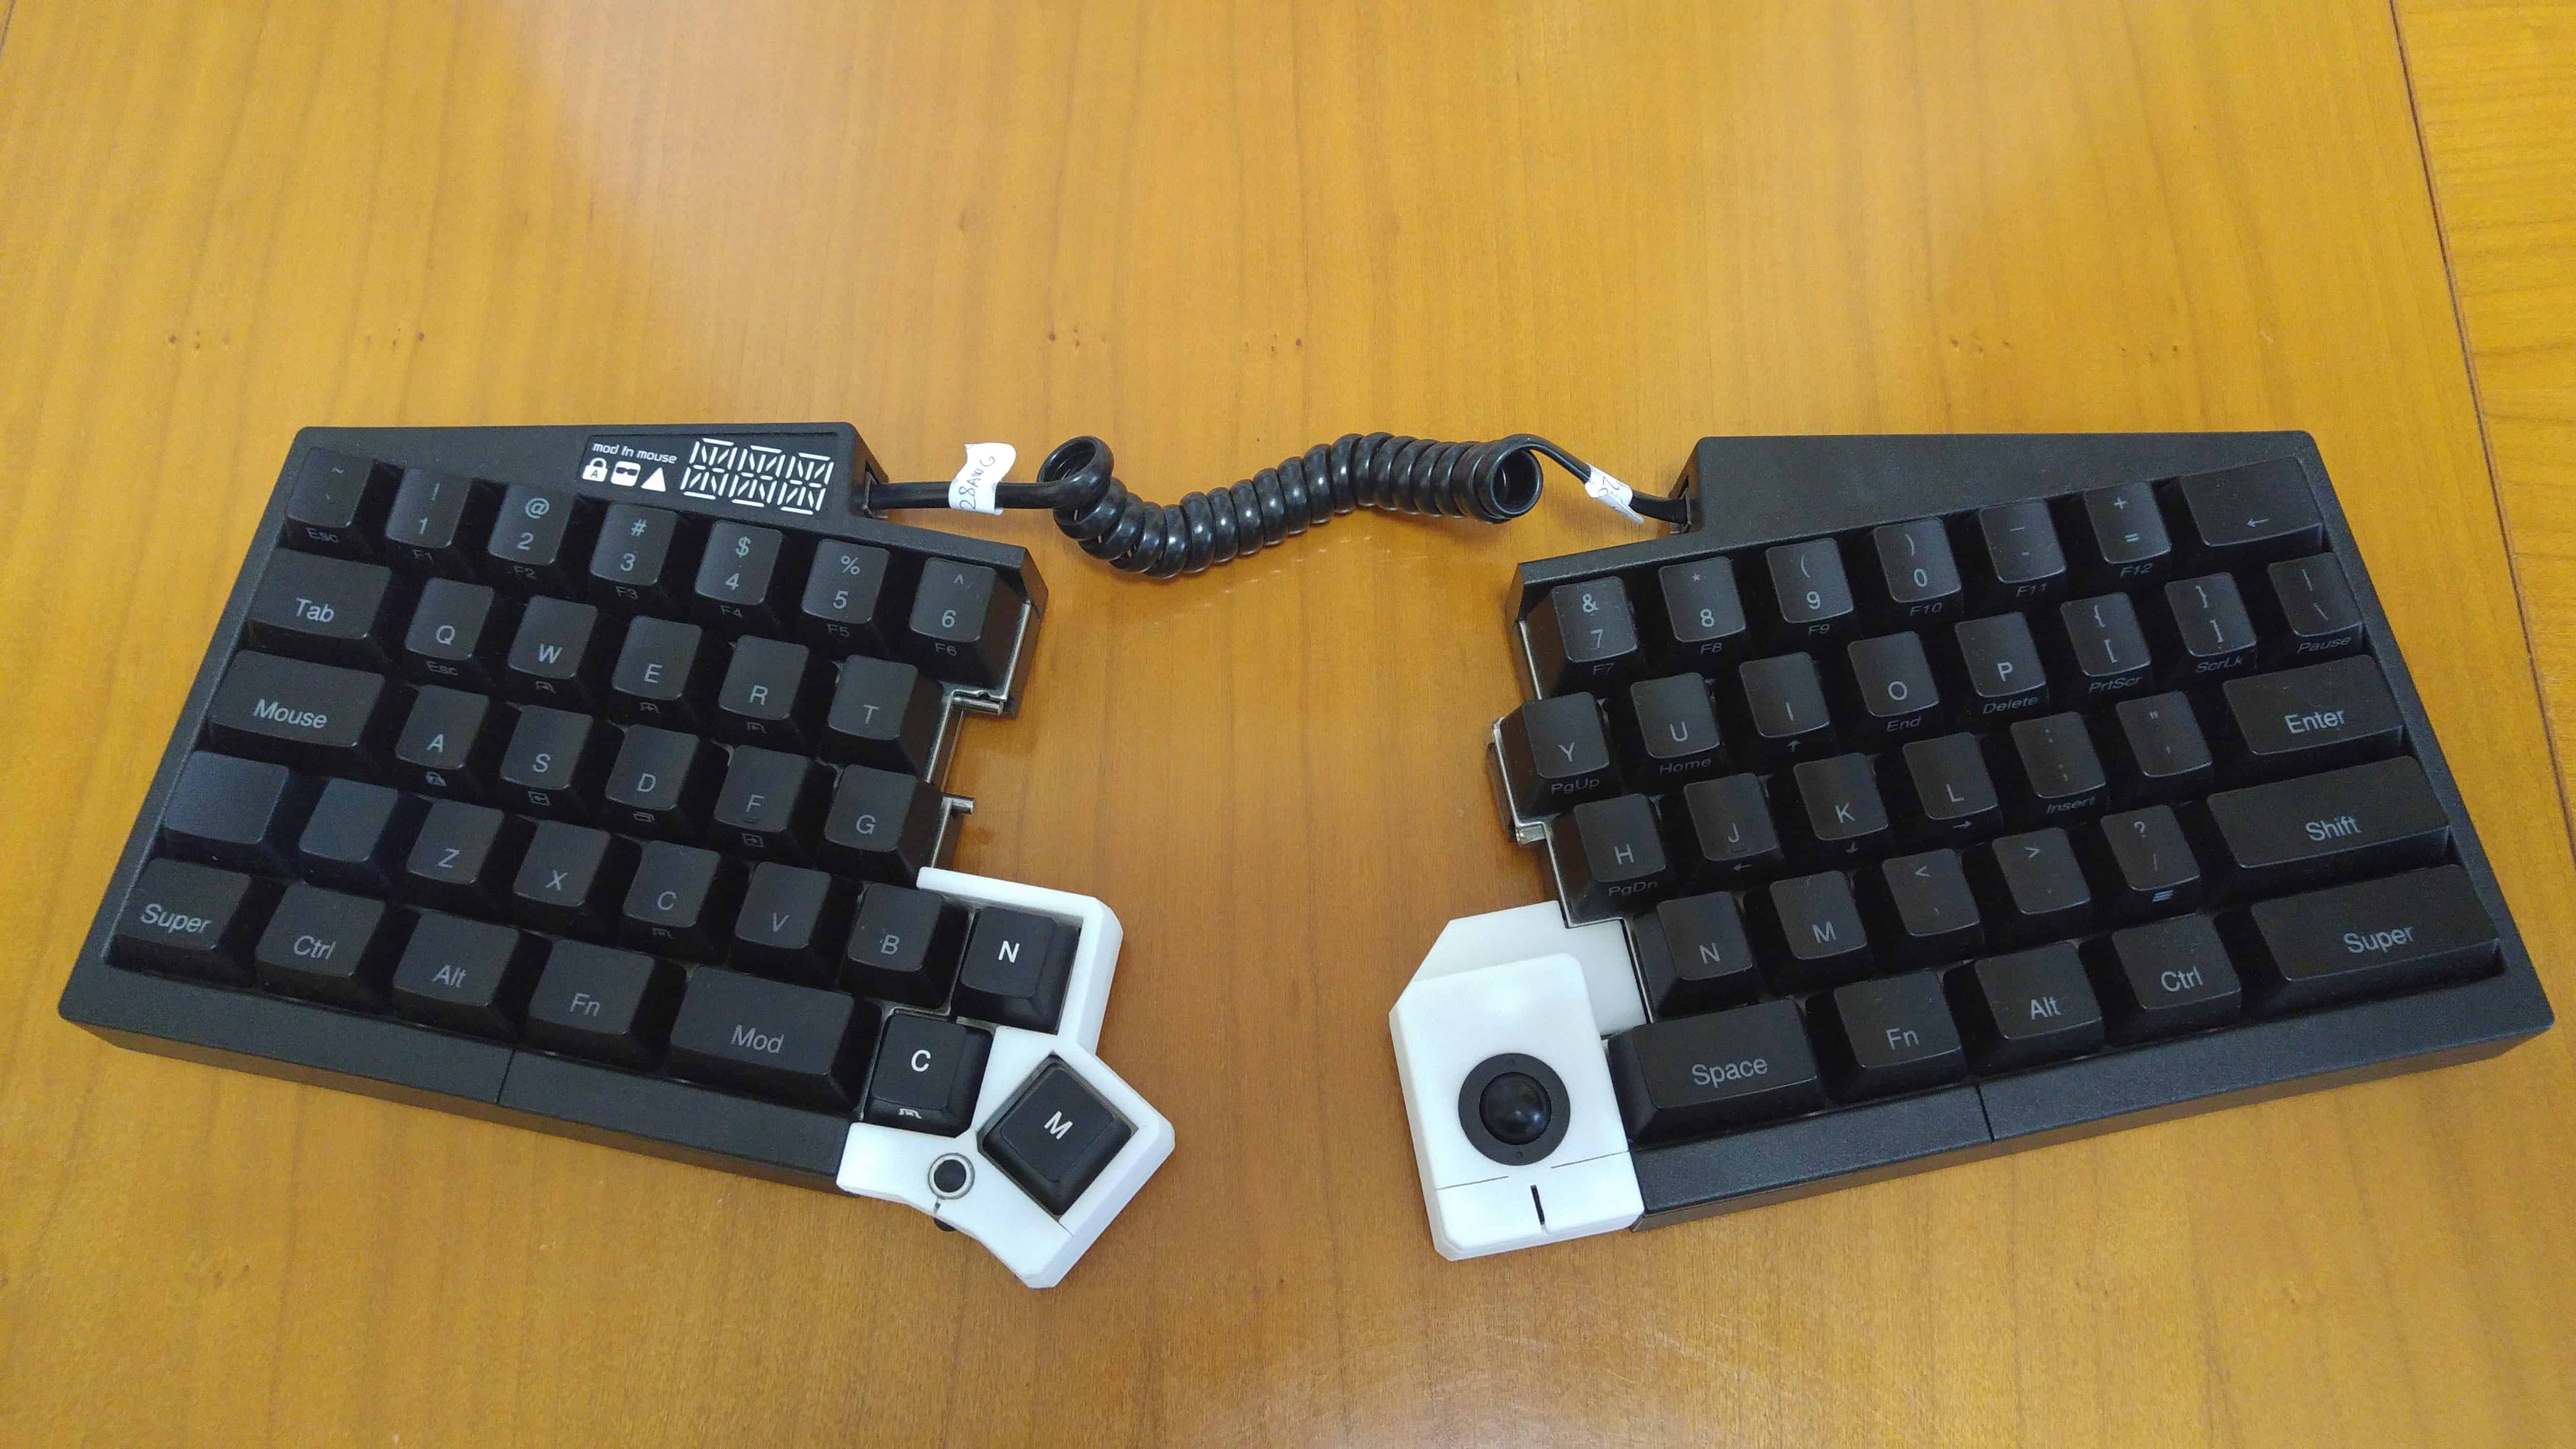 Features Archives Ultimate Hacking Keyboard First To Use Removable Printed Circuit Boards Designed For Quick In These Prototypes Were Using A White Powder Like Material But The Final Modules Will Be Offered Black Color